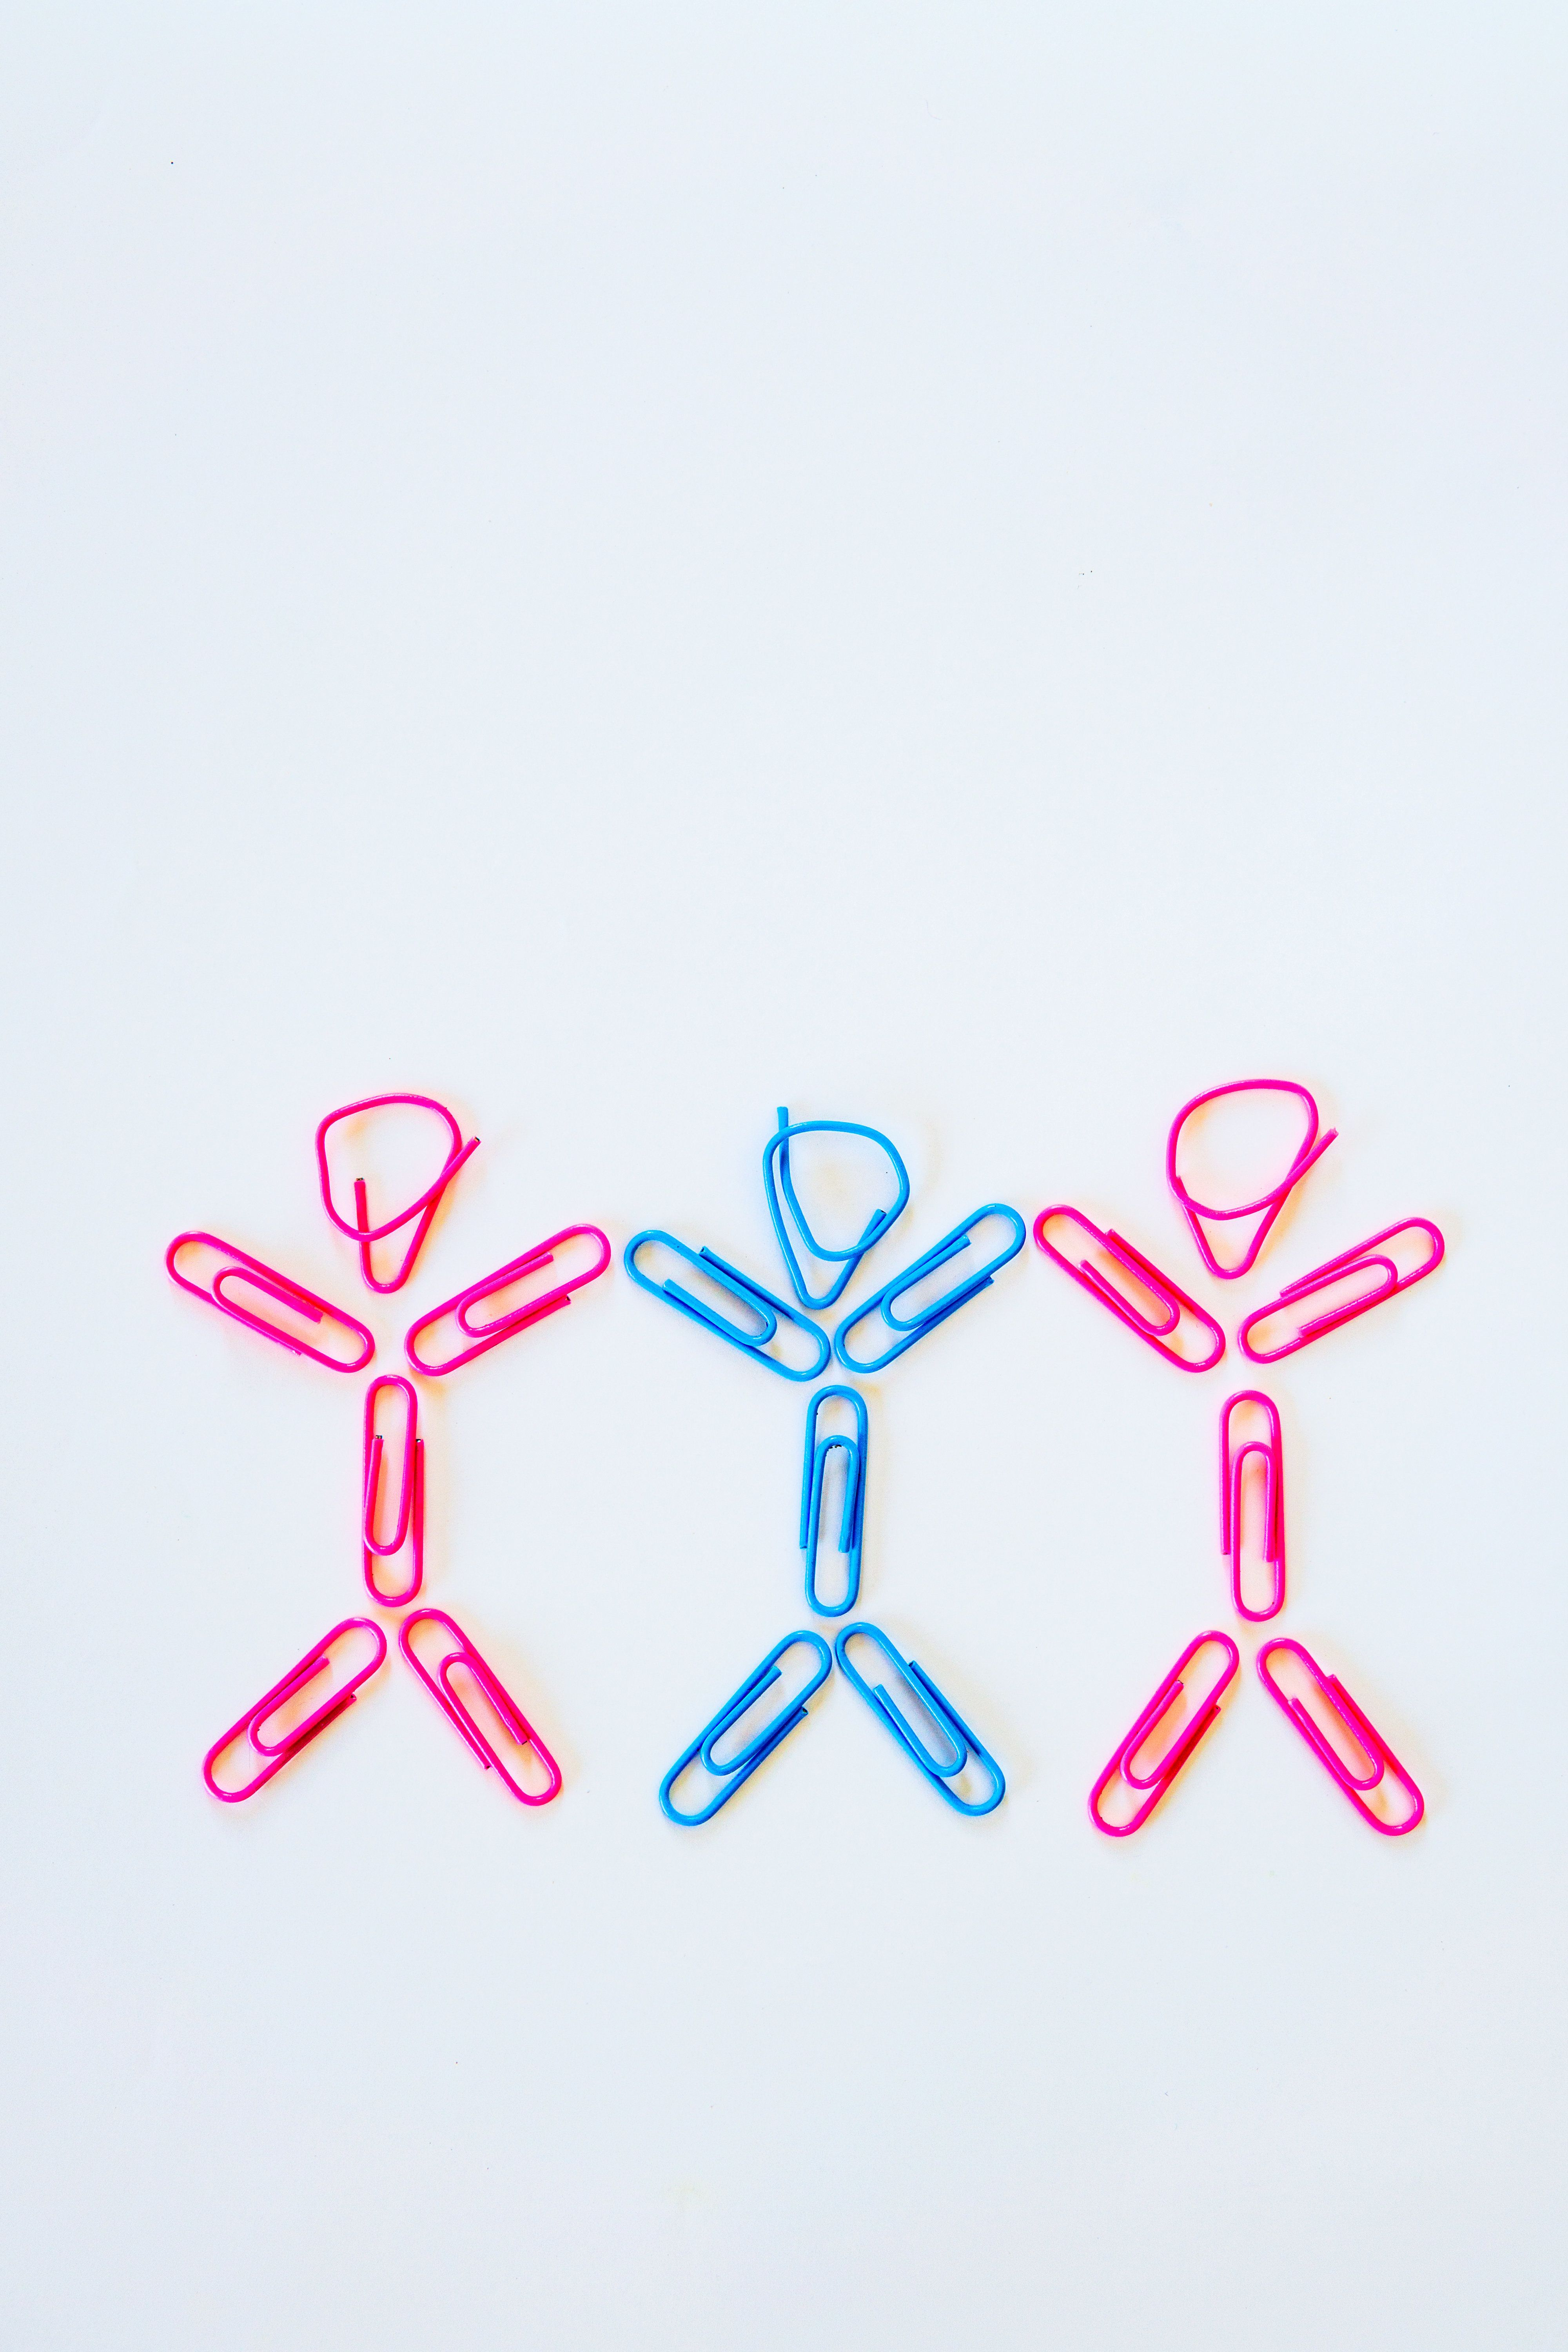 A conceptual idea of a polygamous bisexual relationship.  Two women and one man holding hands, with arms raised.  Represented by stereotypical pink colours for girls and blue for boys, it also represents alternative lifestyles, LGBTQ issues and simplicity.  Studio shot on a white background.